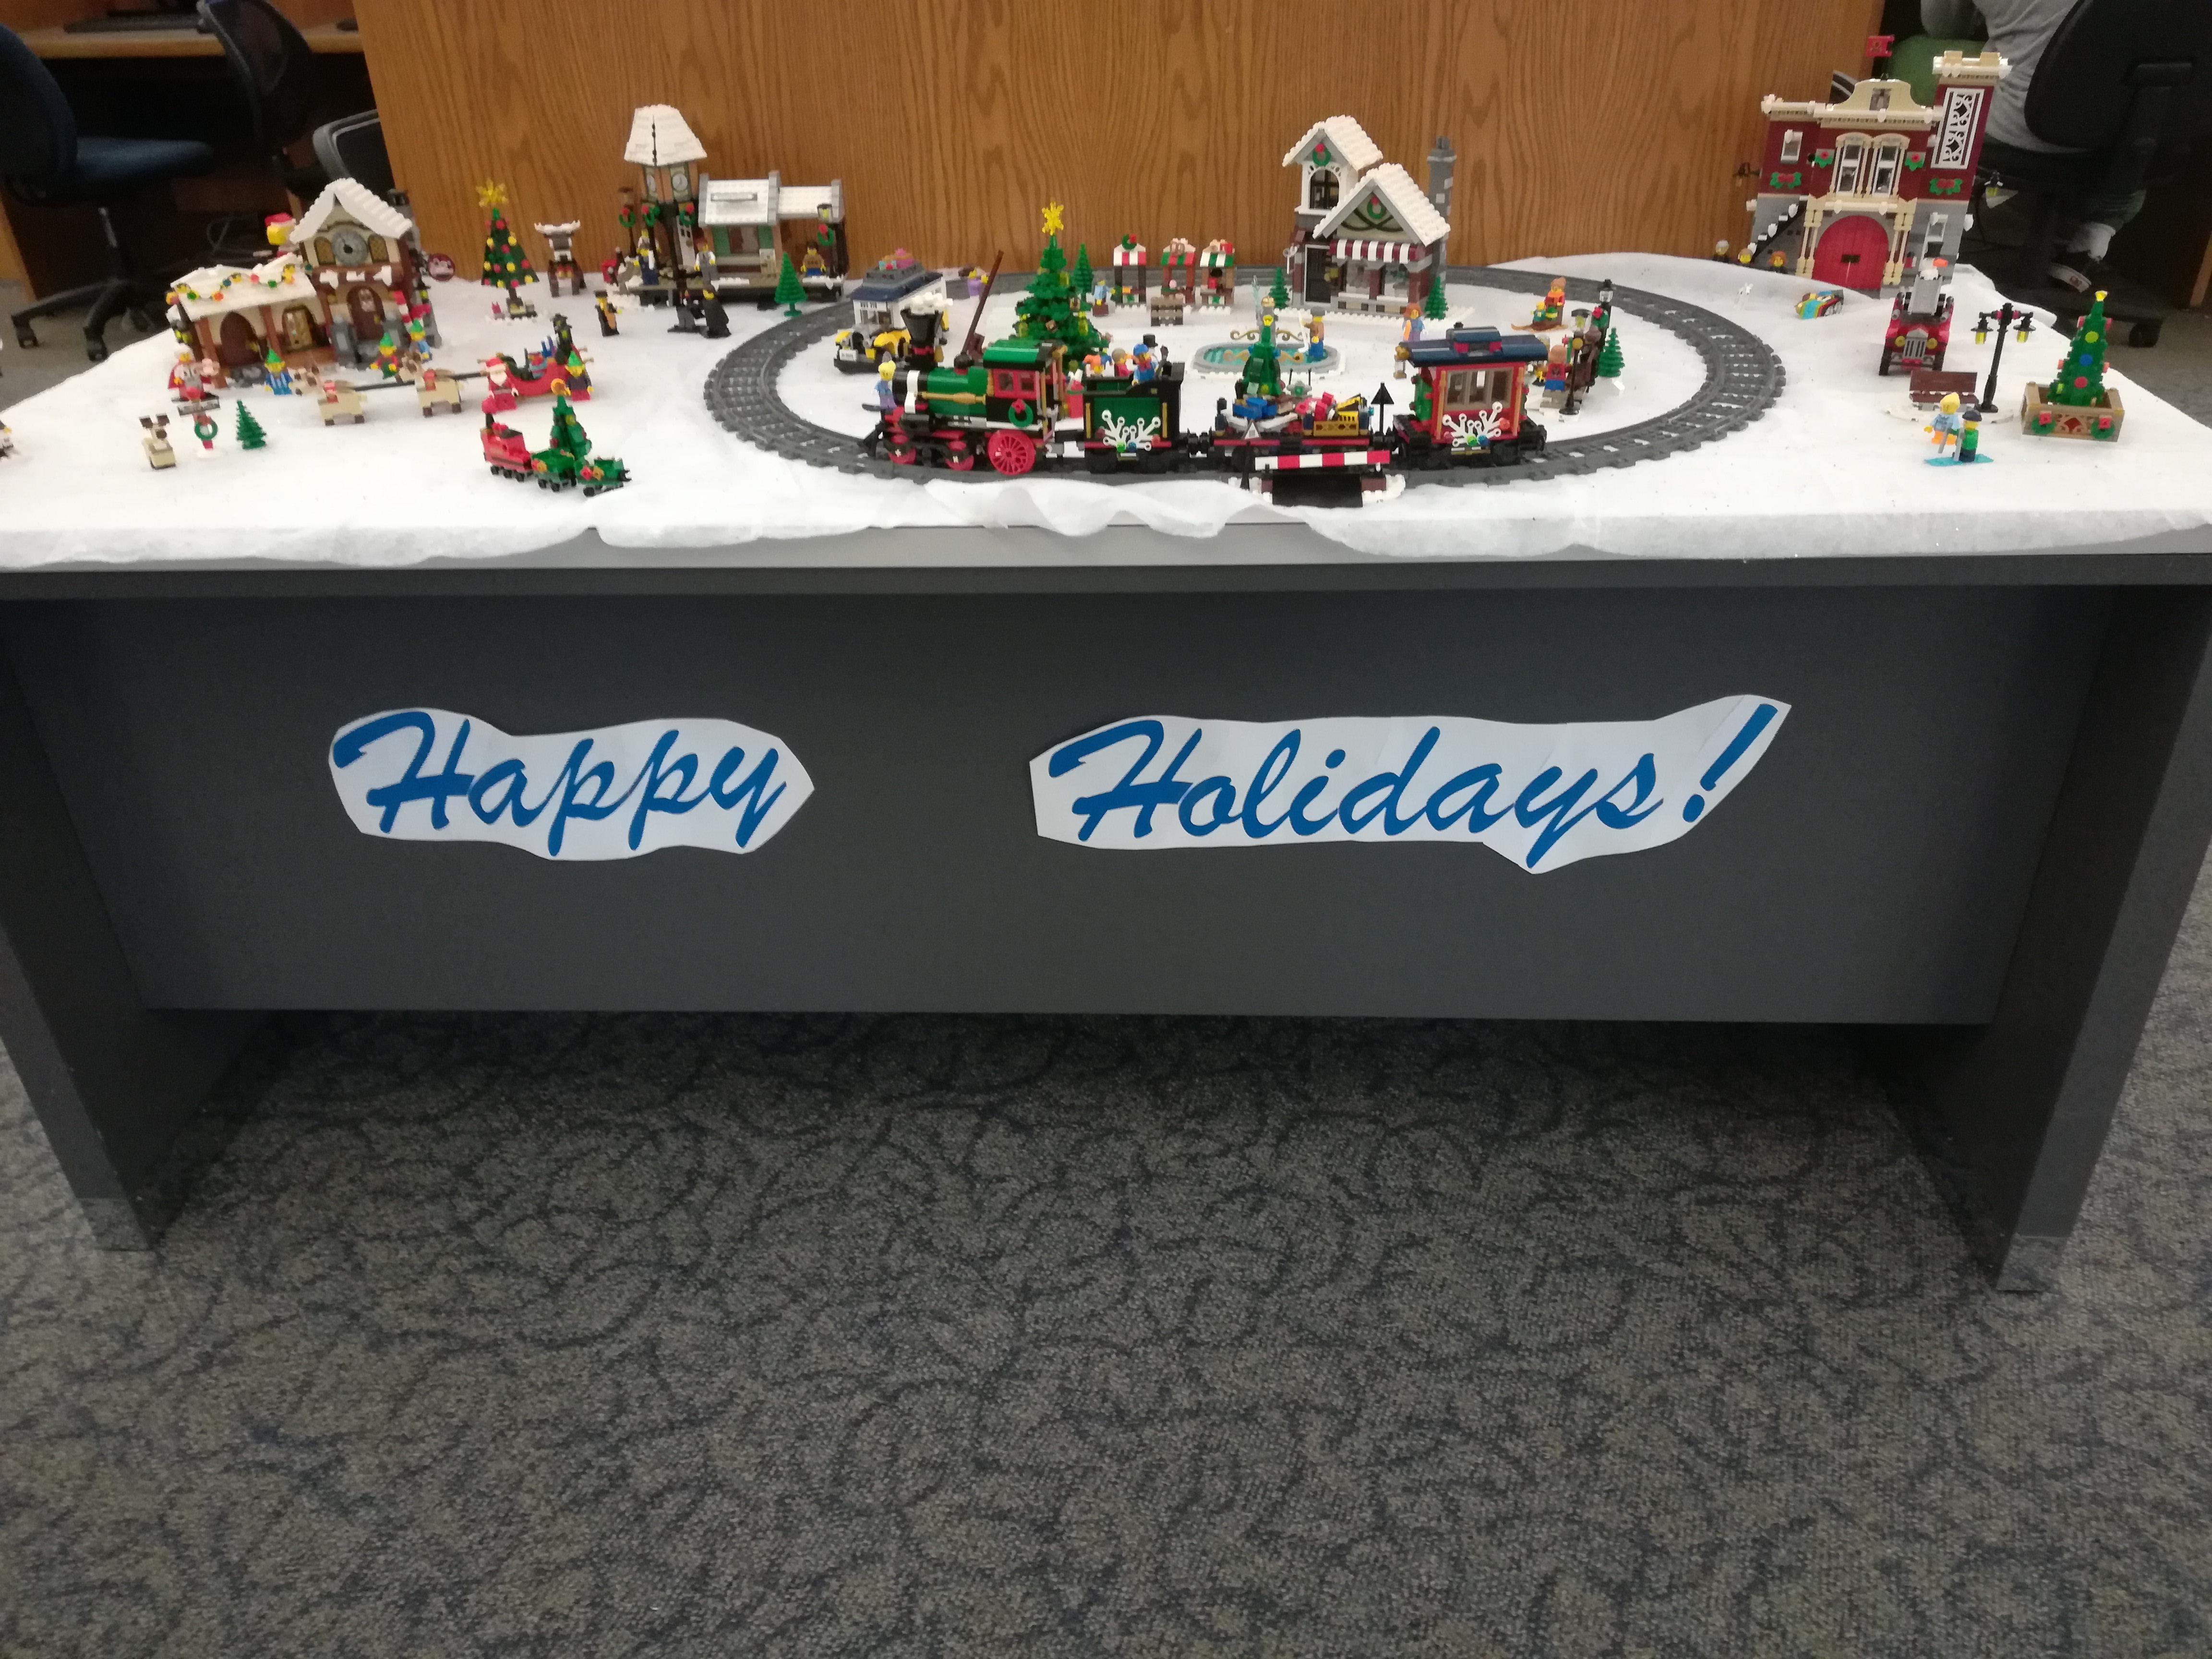 "Lego Christmas Village with an operational train and a sign that reads"" Happy Holidays"""